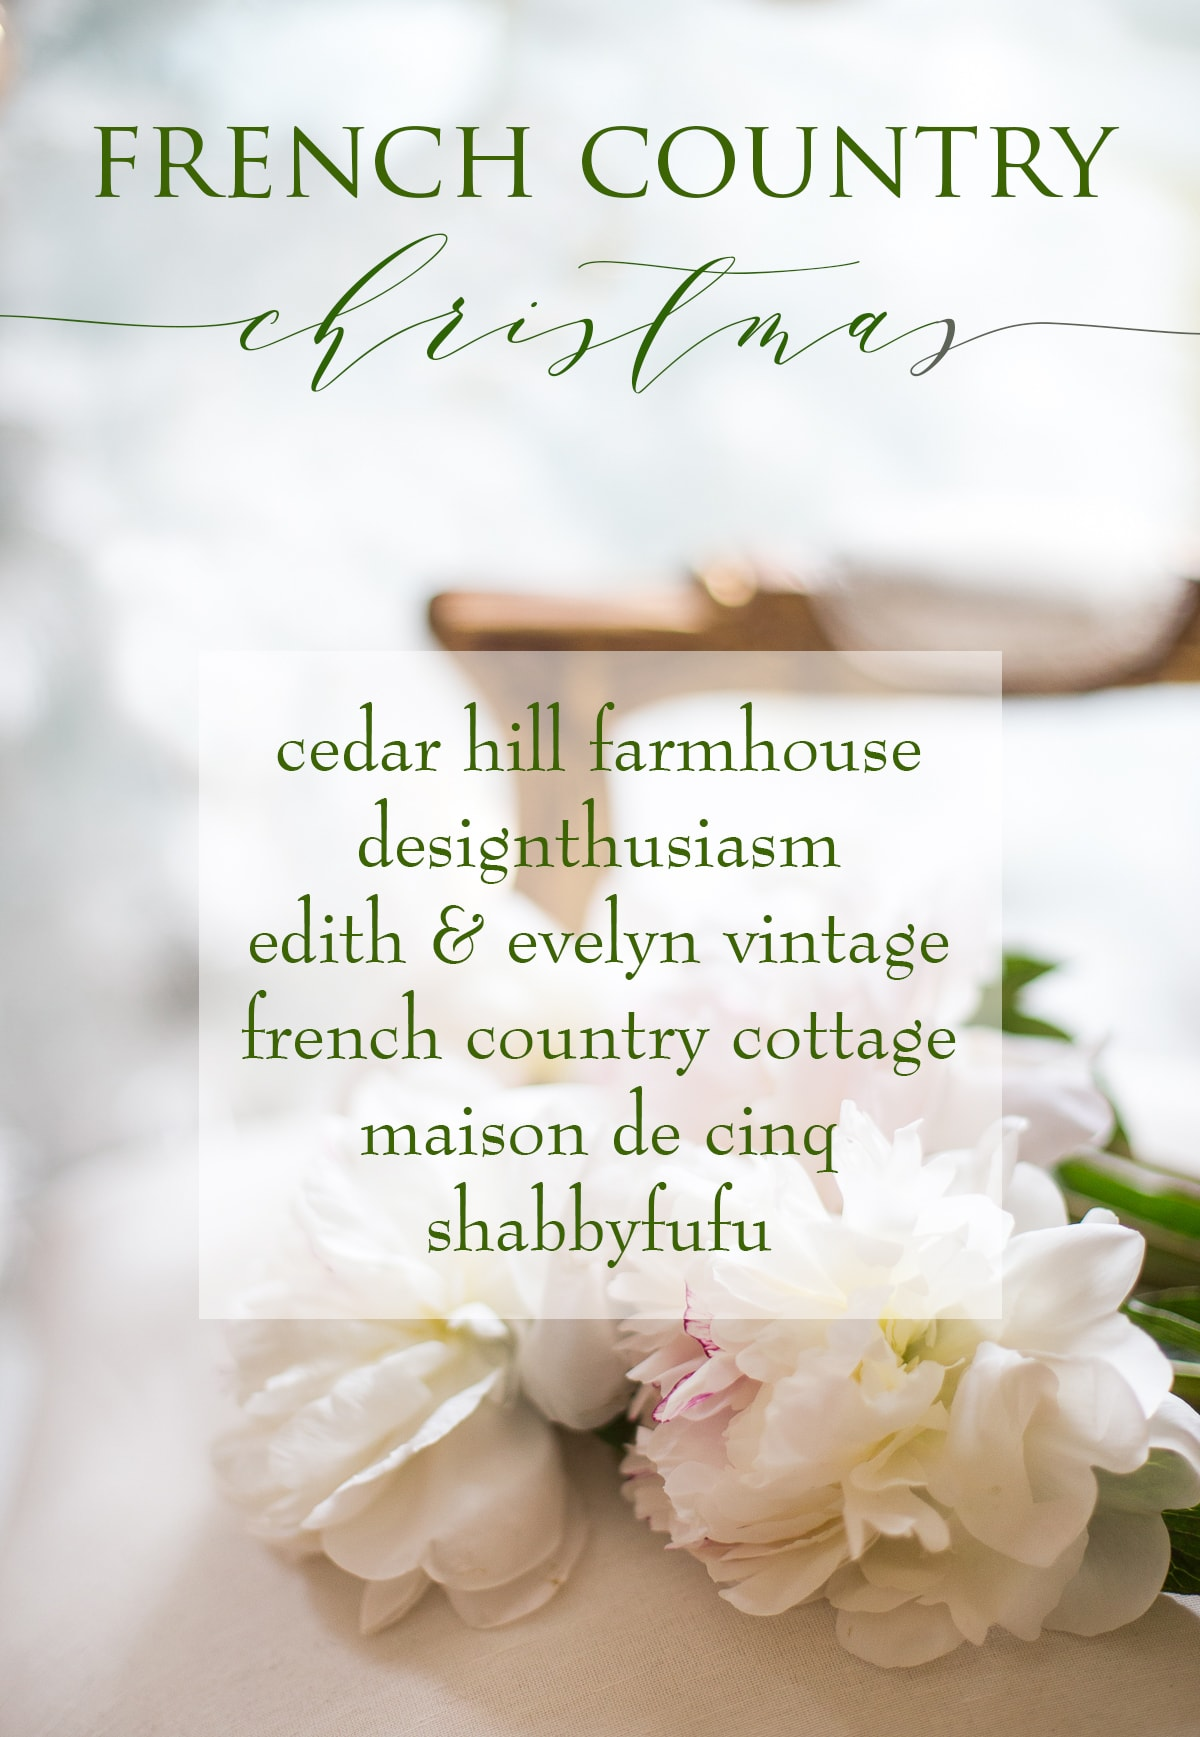 French Country Christmas logo